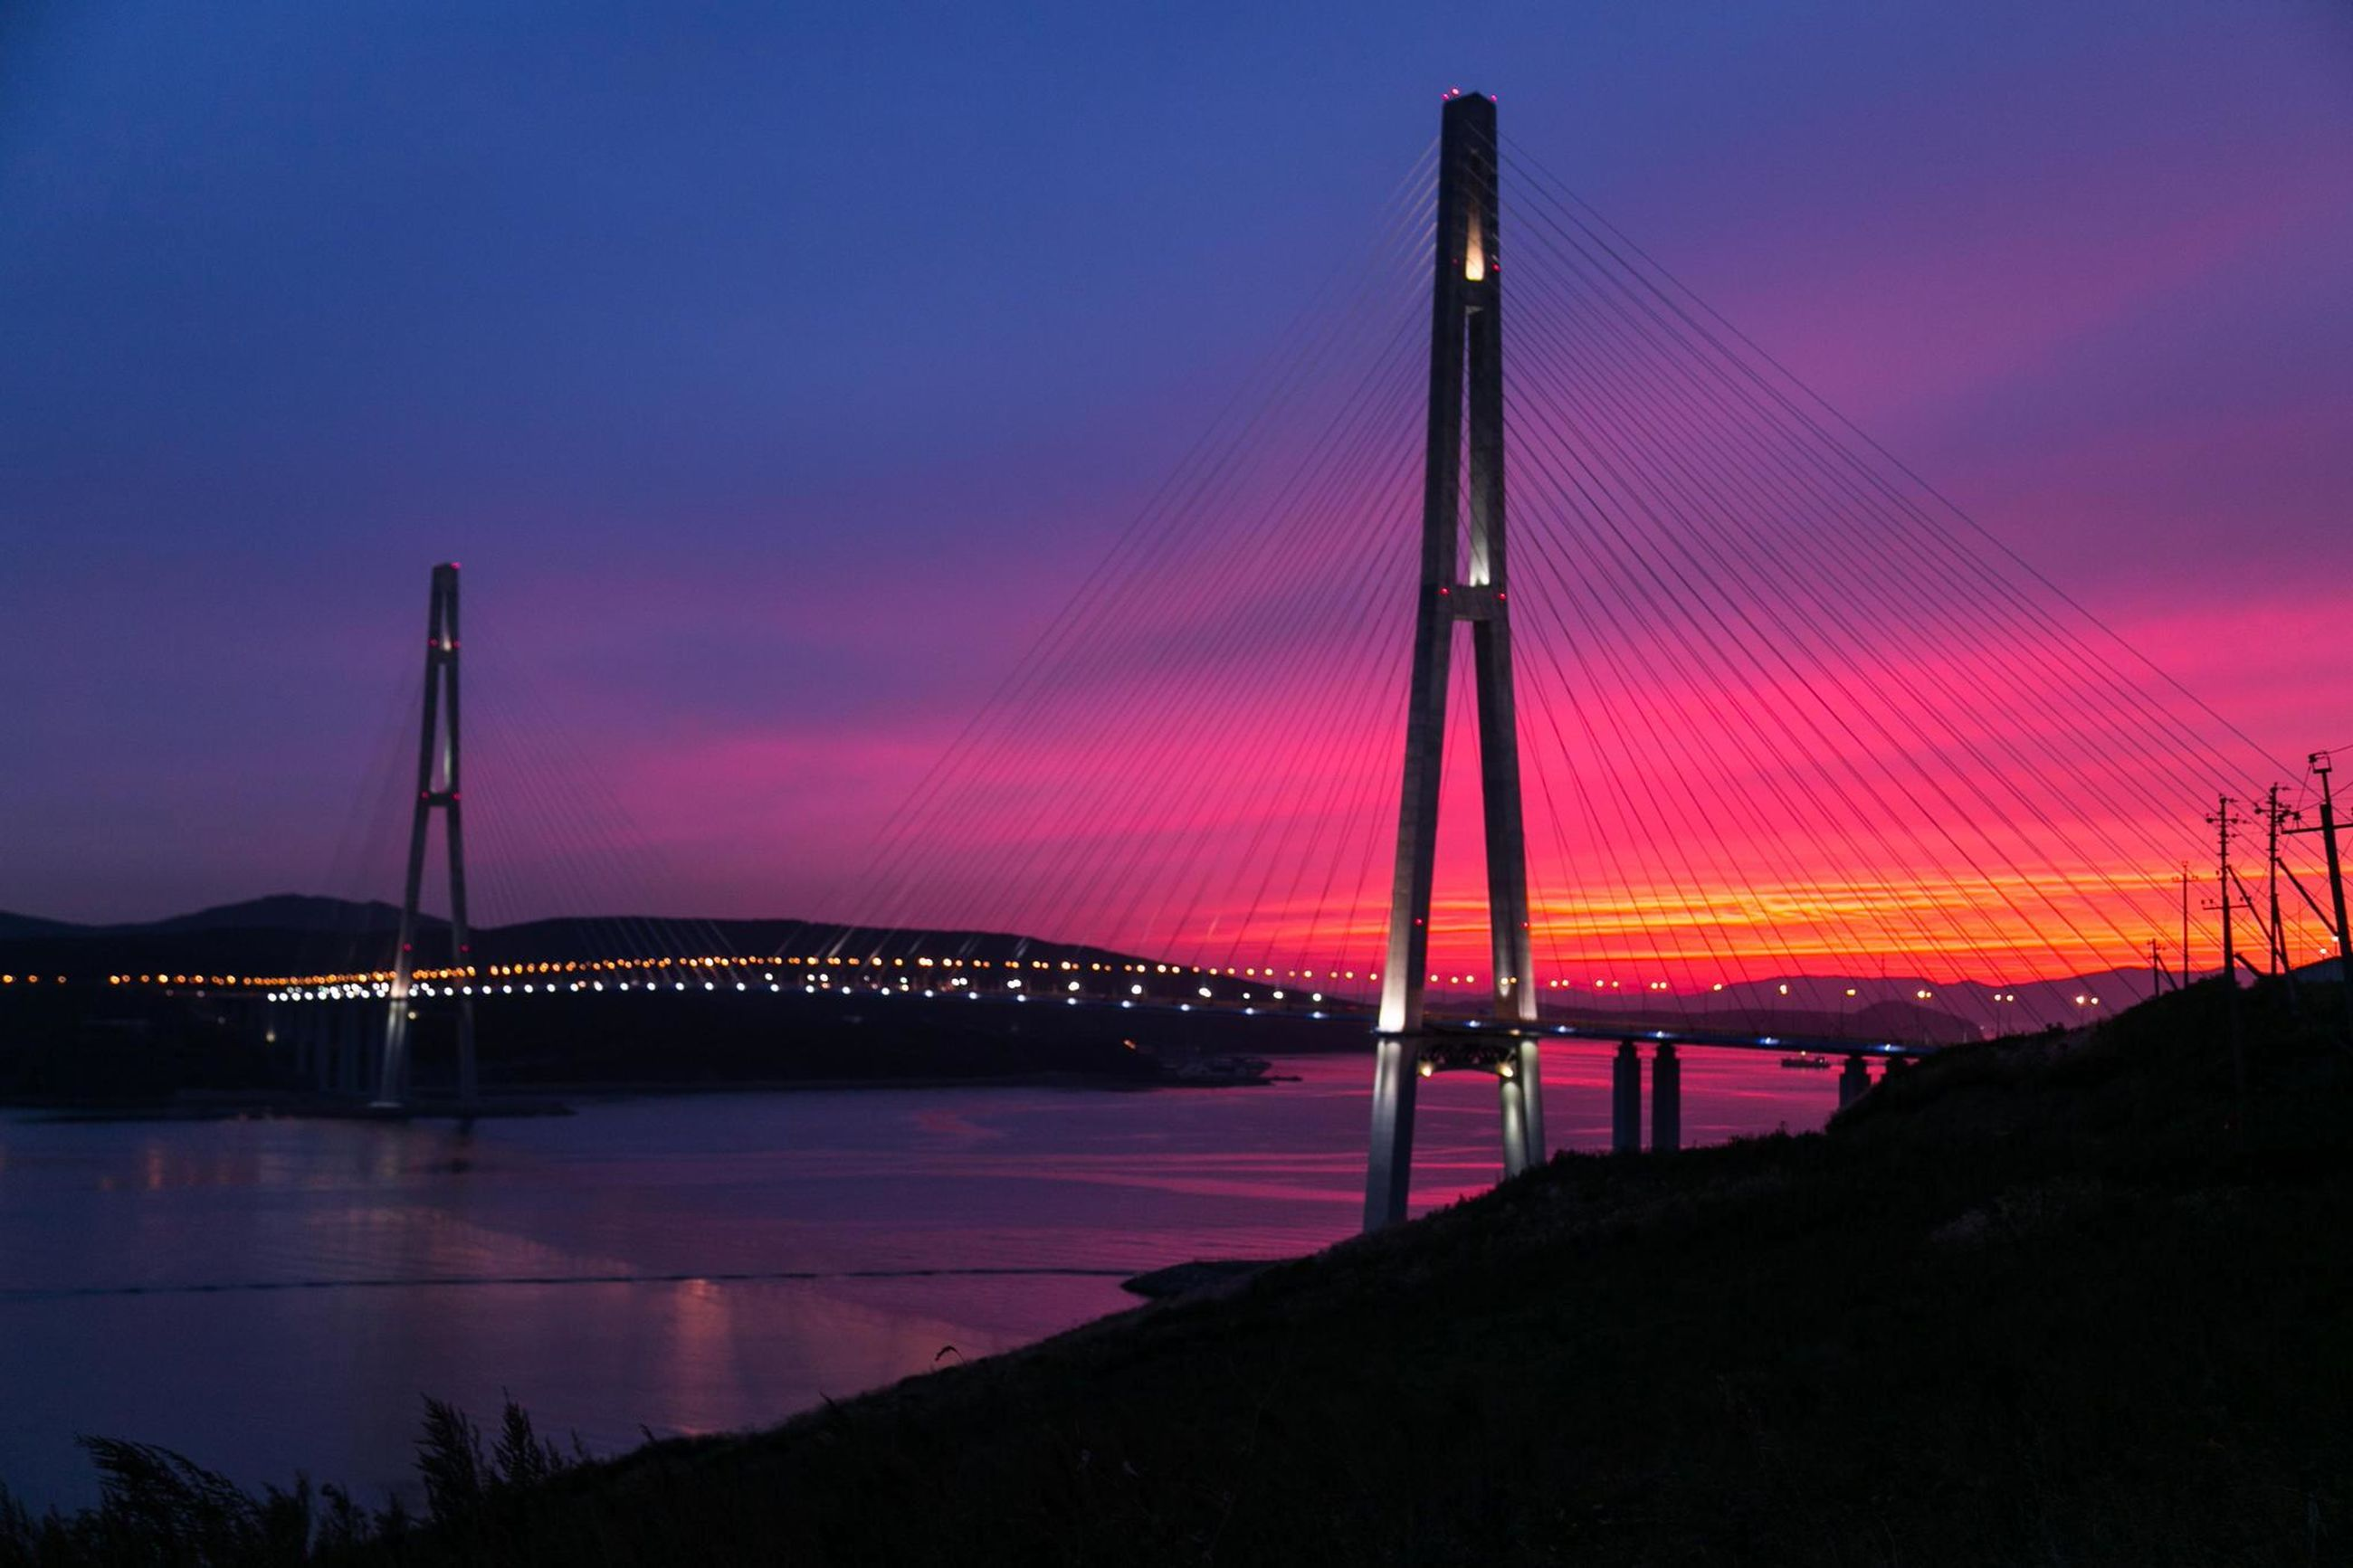 sunset, sky, silhouette, orange color, connection, scenics, tranquility, dusk, tranquil scene, beauty in nature, suspension bridge, bridge - man made structure, illuminated, cloud - sky, nature, idyllic, outdoors, transportation, no people, engineering